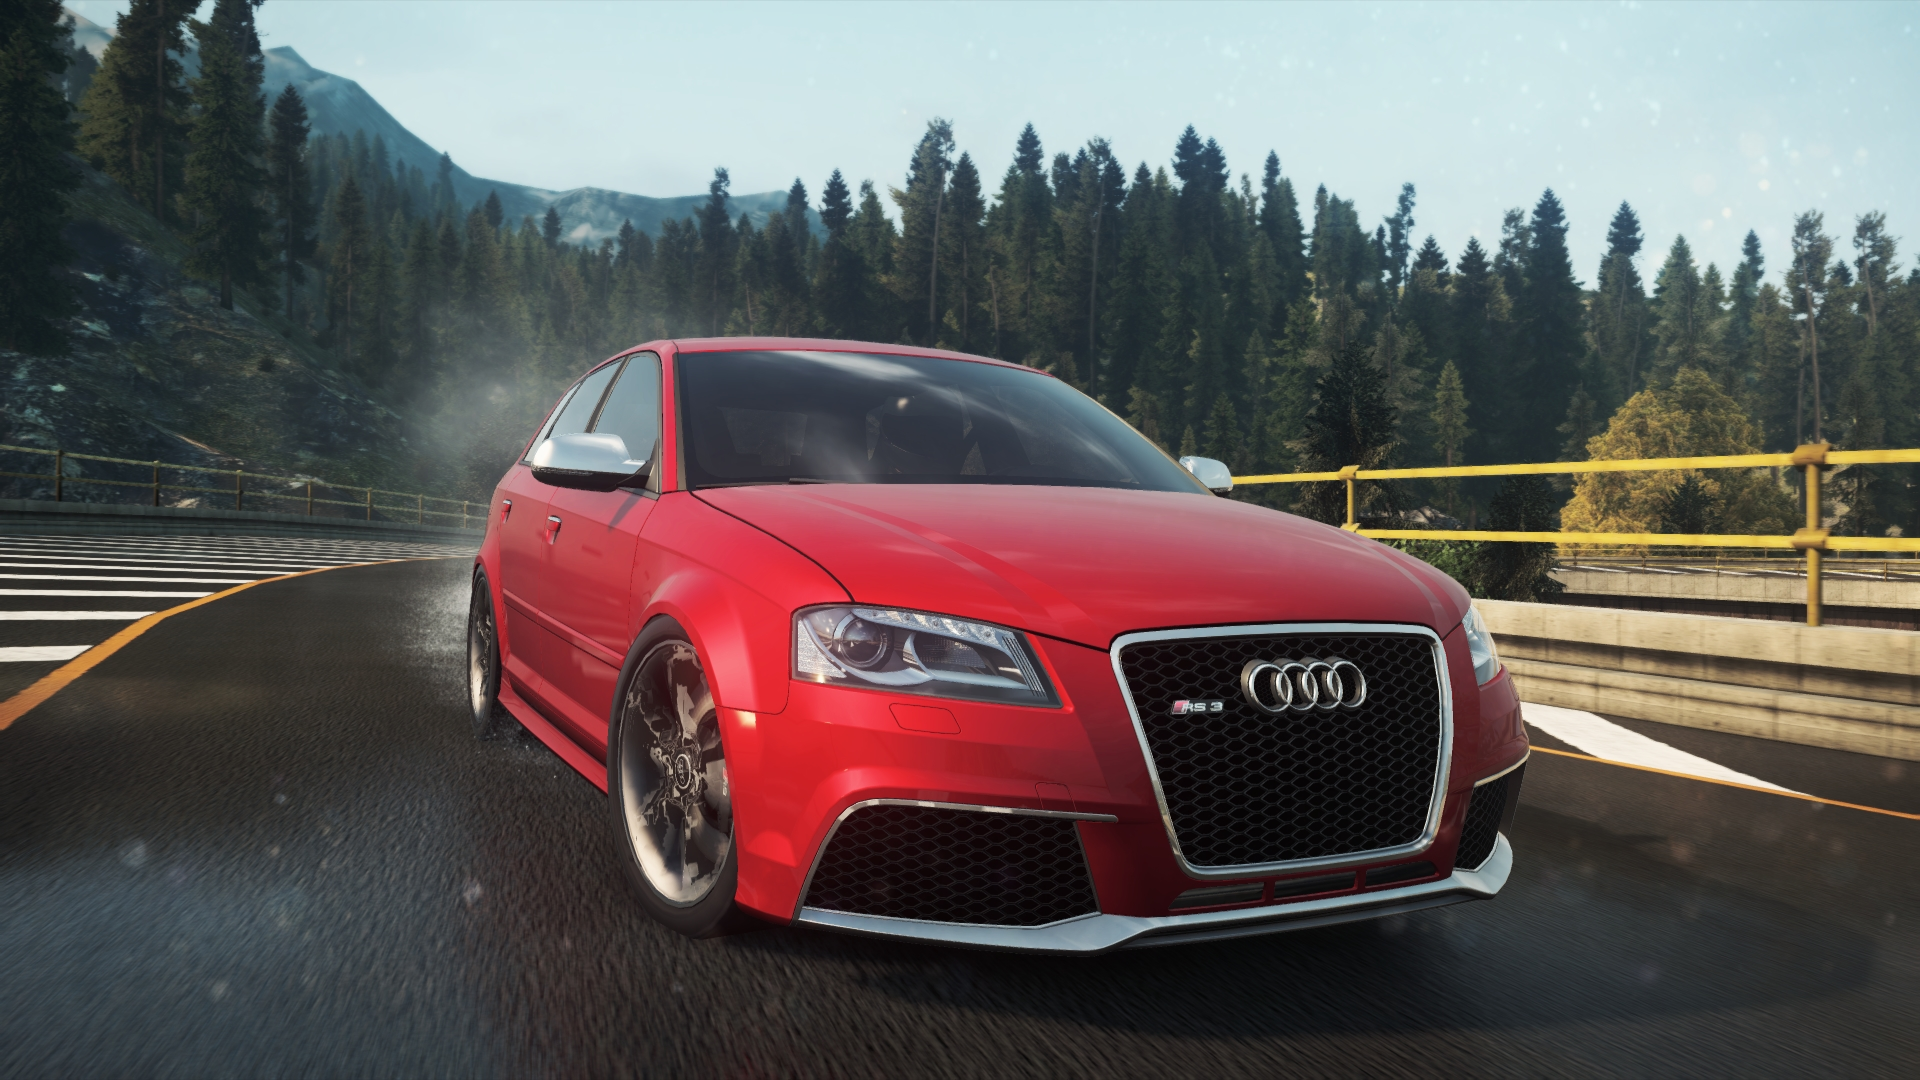 Audi RS Sportback Need For Speed Wiki FANDOM Powered By Wikia - Audi rs3